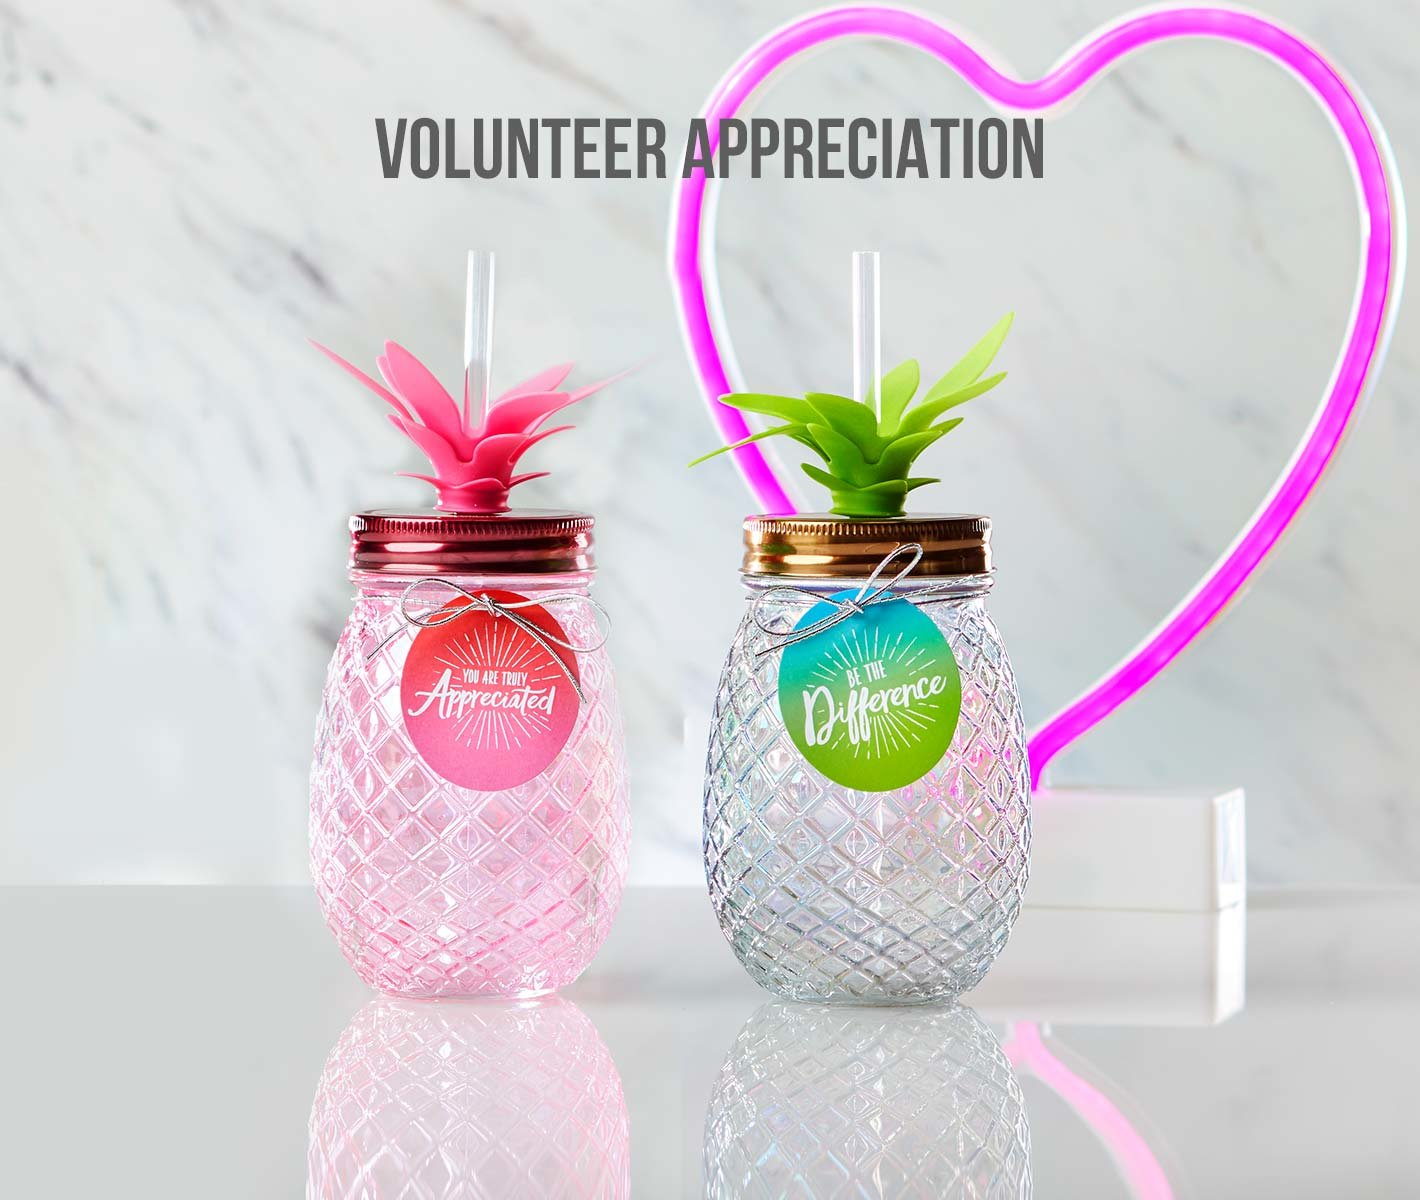 Shop Volunteer Appreciation Gifts